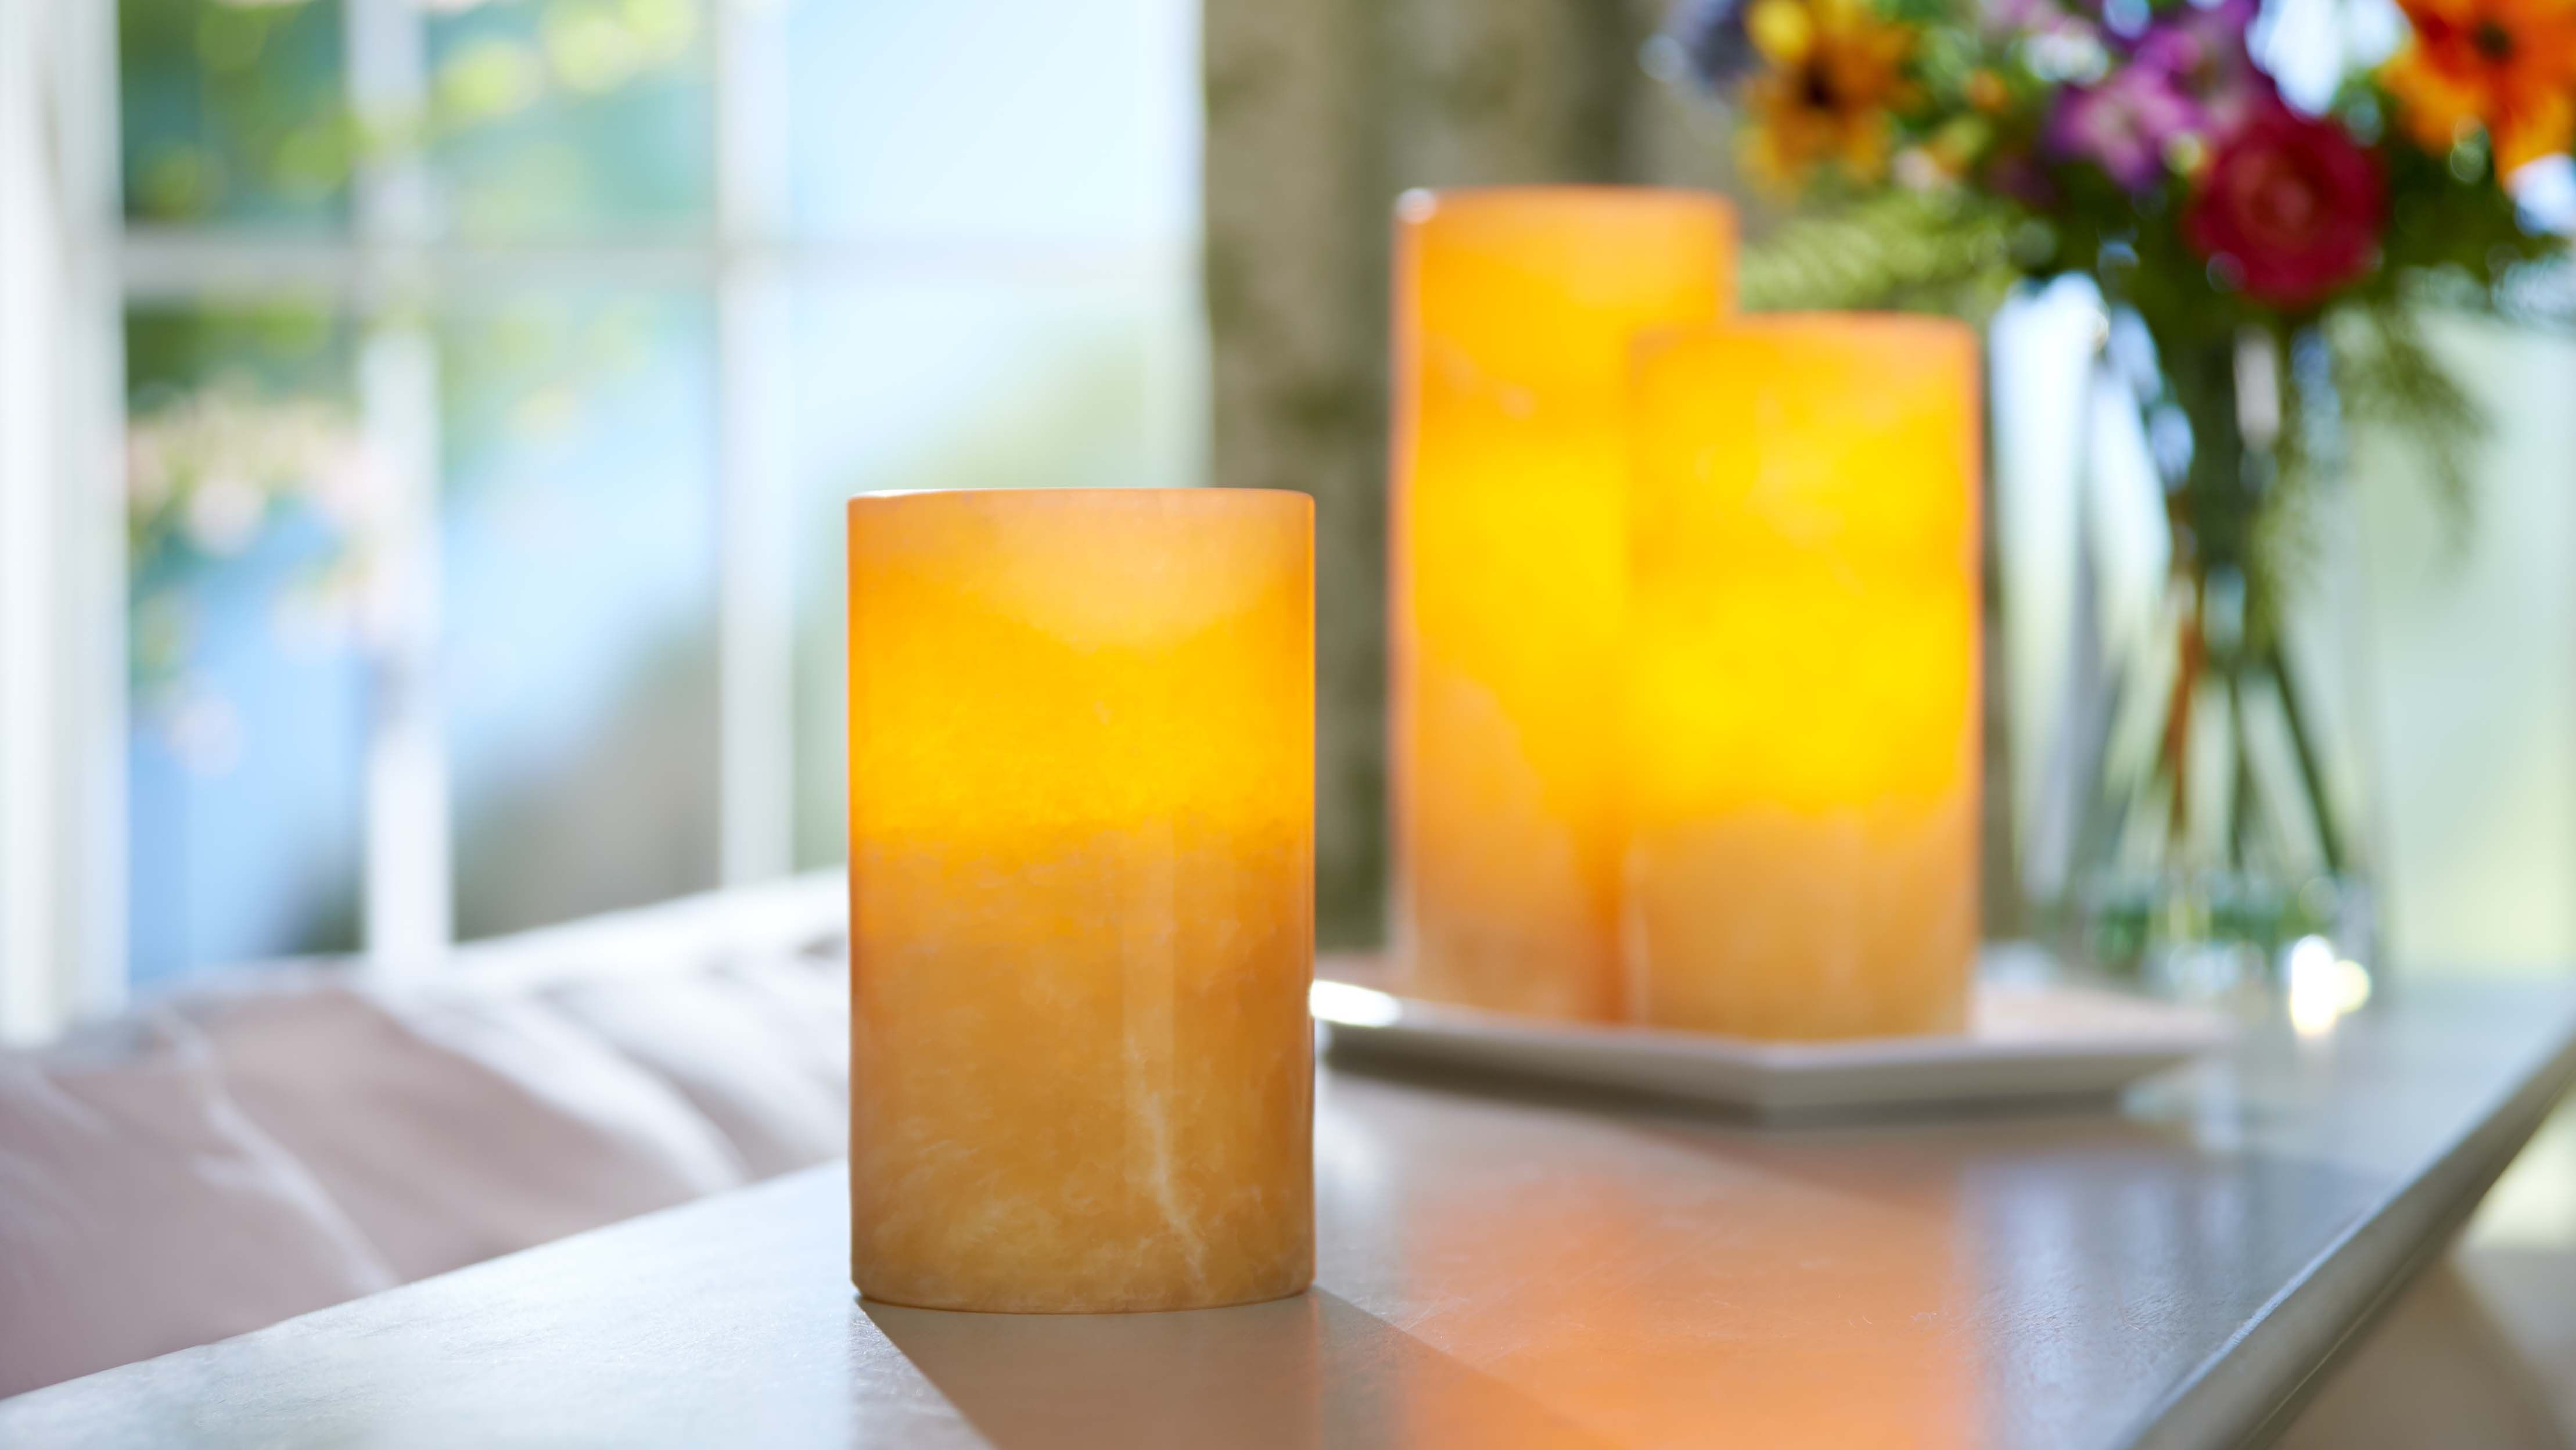 Flameless Pillars Made Of Marble Two Heights Available 6 H207922 And 7 5 H207993 Http Qvc Co Shop Valerieparrhil Candles Flameless Candles Candle Making